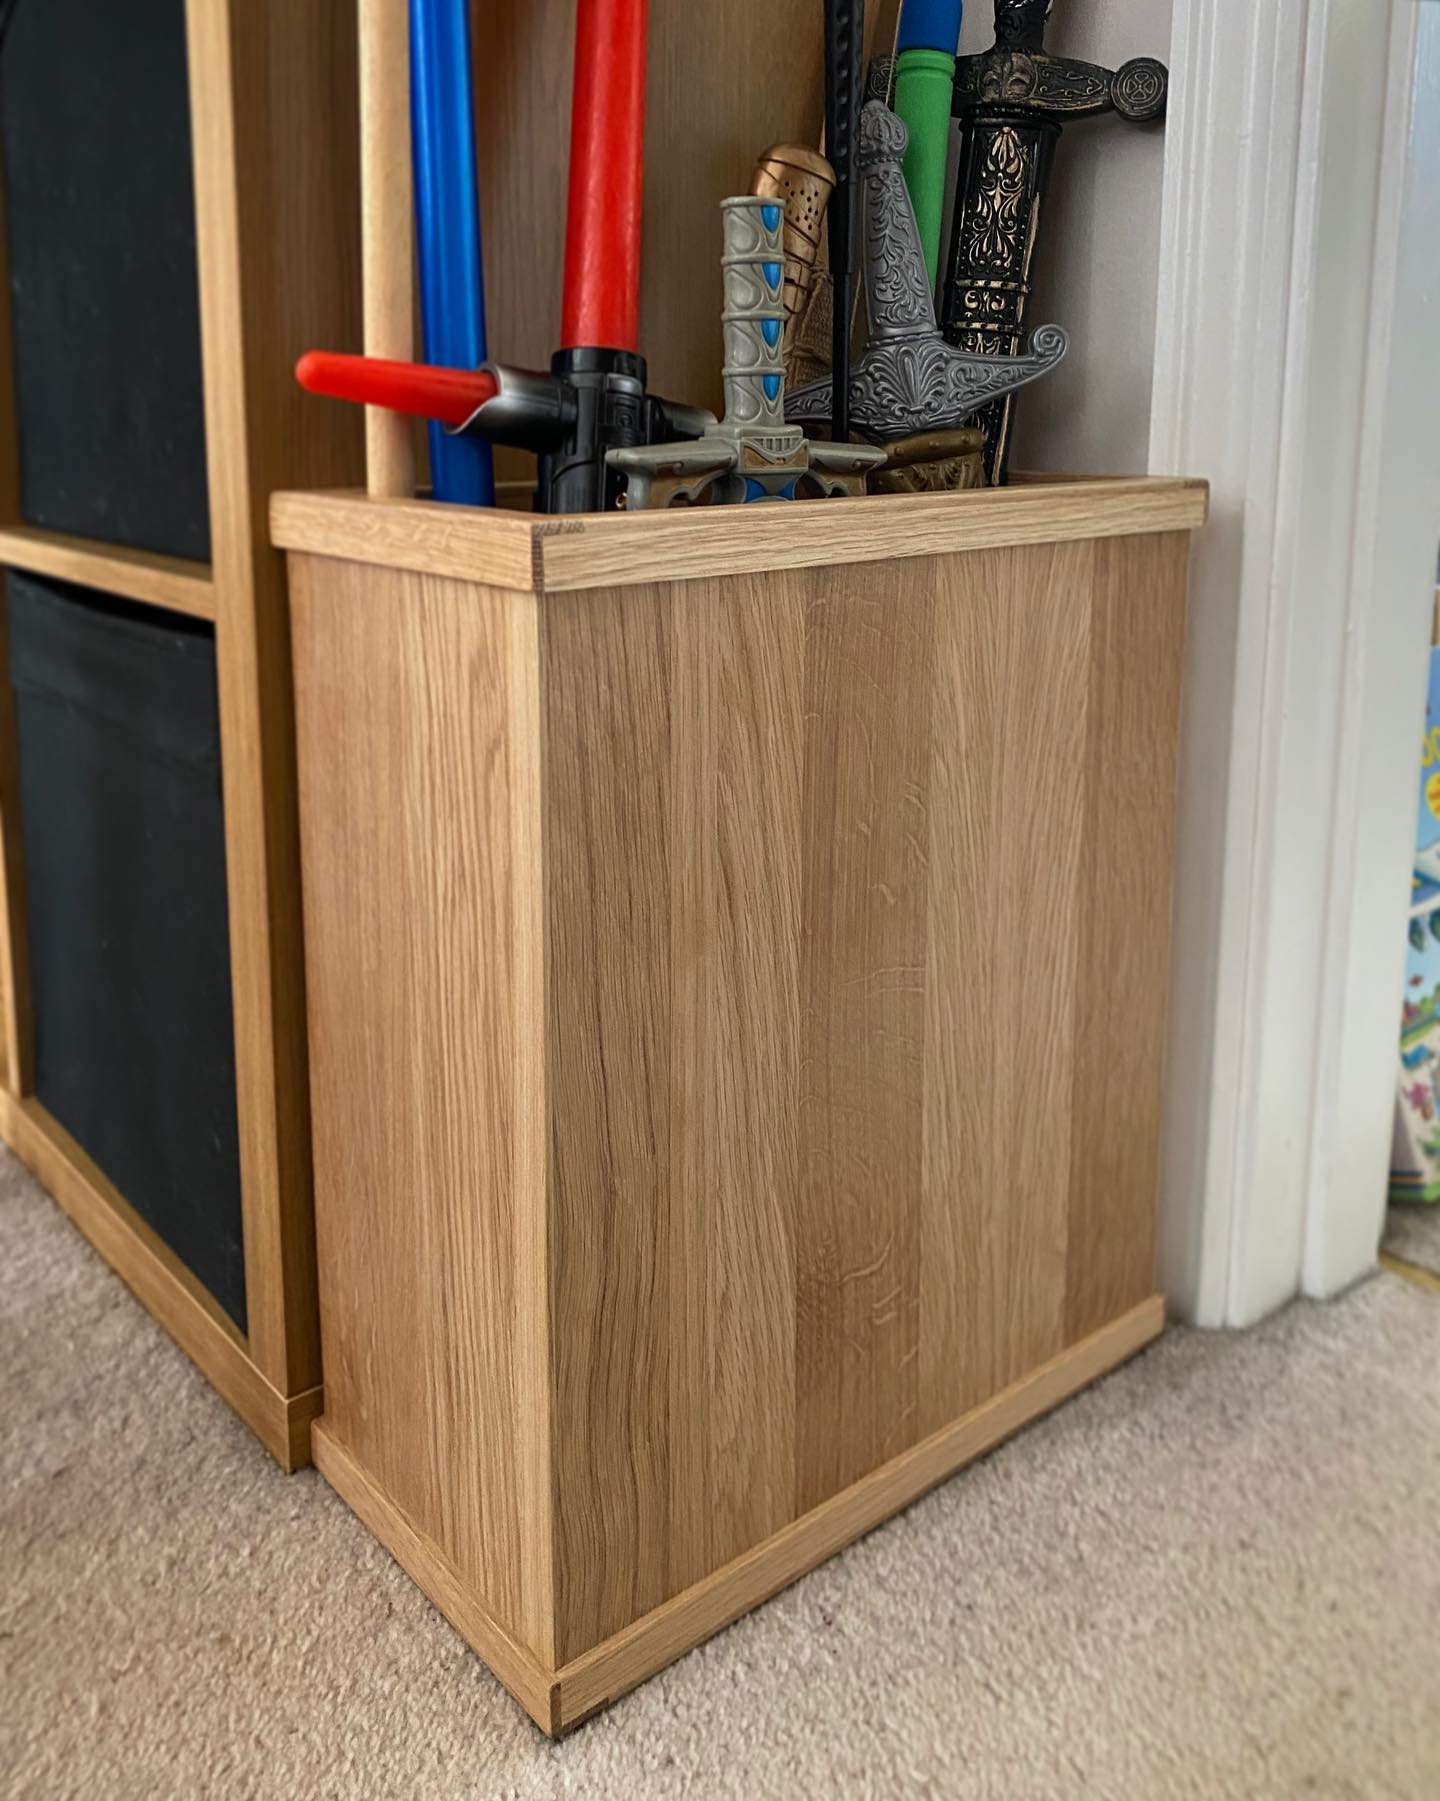 Here's a lovely project we recently worked on for a family member ️This oak storage box was designed to be in keeping with the surrounding decor, give our nephew easy access to his toys and keep this corner nice and tidy. So lovely to see it in use! What a great collection of swords and lightsabers!